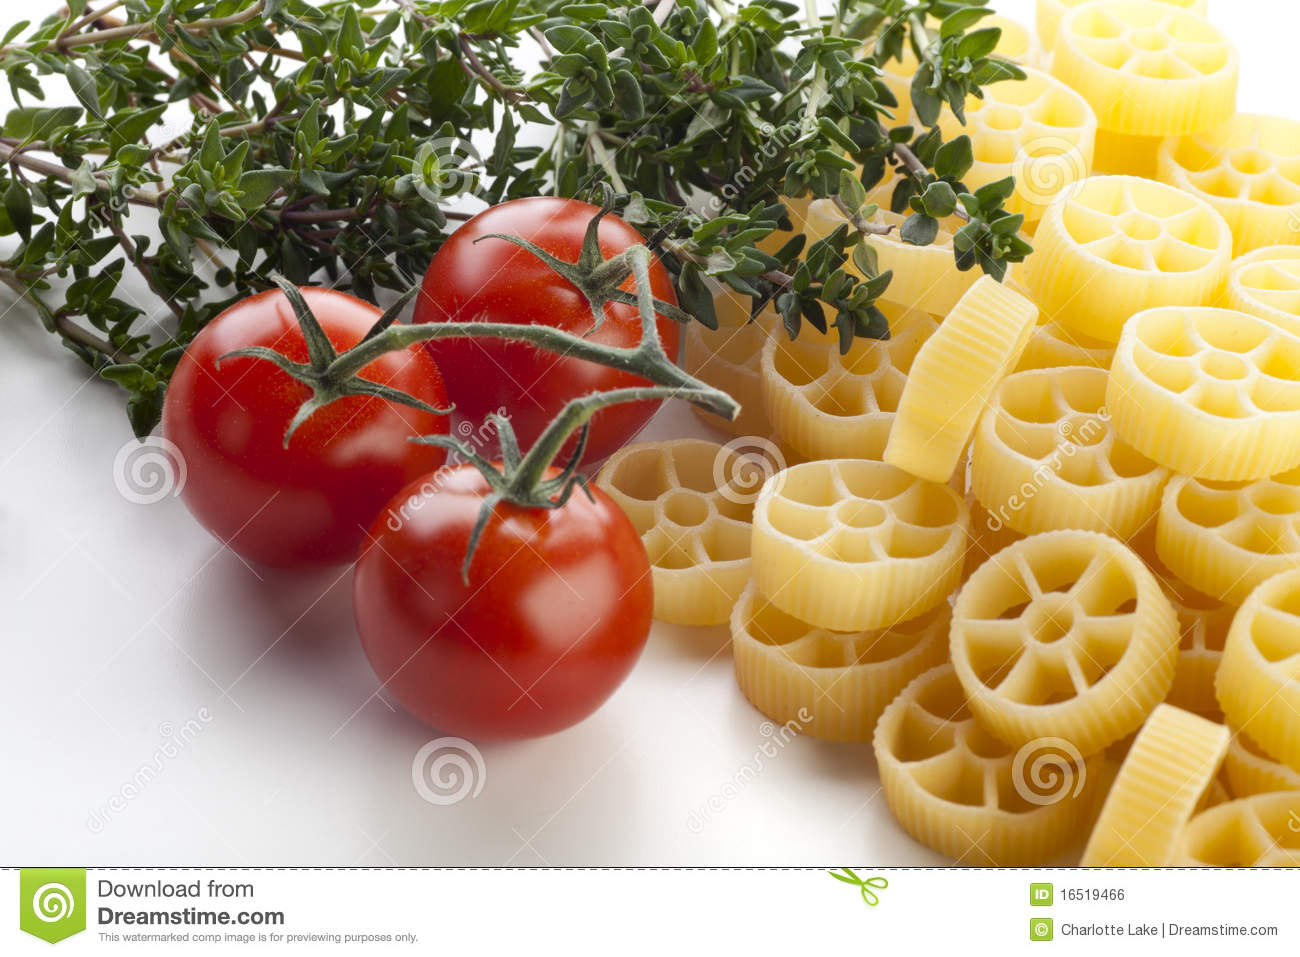 Pasta http://www.dreamstime.com/royalty-free-stock-image-rotelle-pasta ...